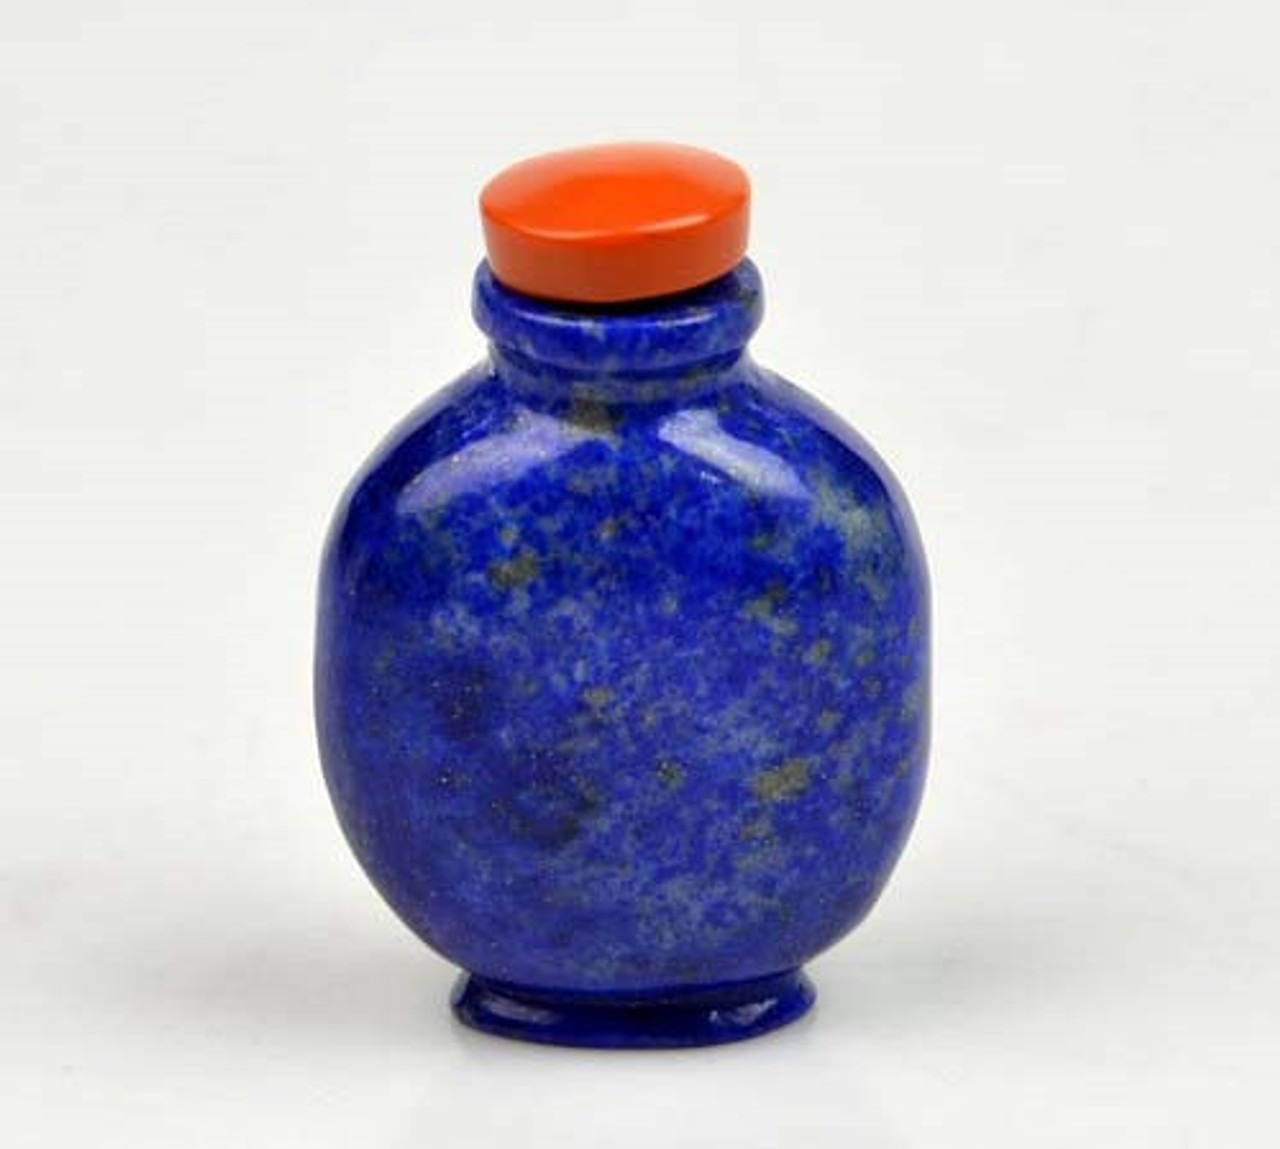 Hand Carved Natural Lapis Lazuli Snuff Bottle Chinese Carving -N009183